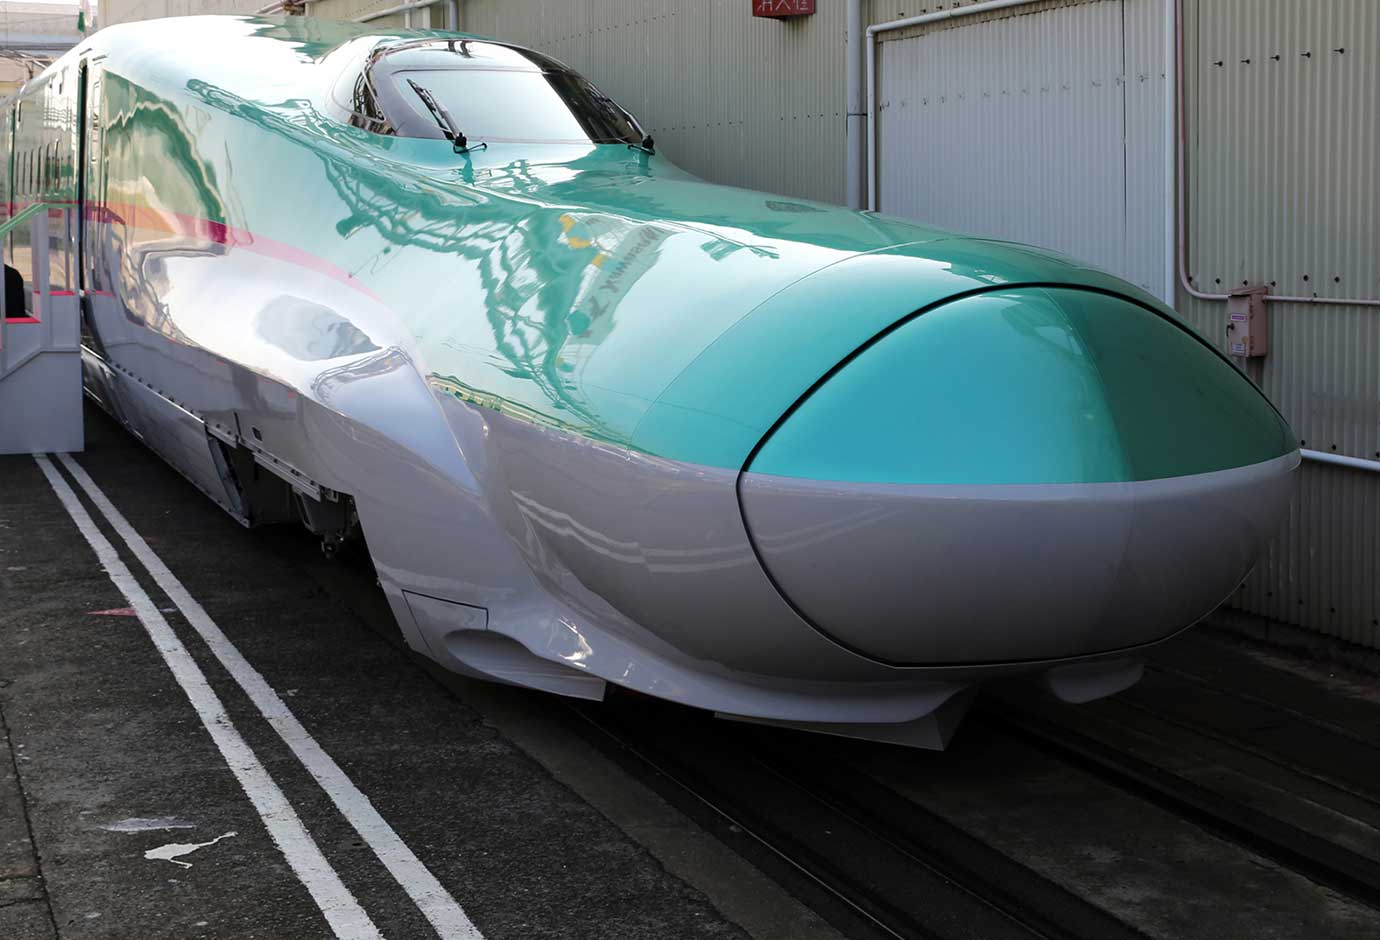 An E5 series Shinkansen bullet train sits parked on a track at Kawasaki Heavy Industries's plant in